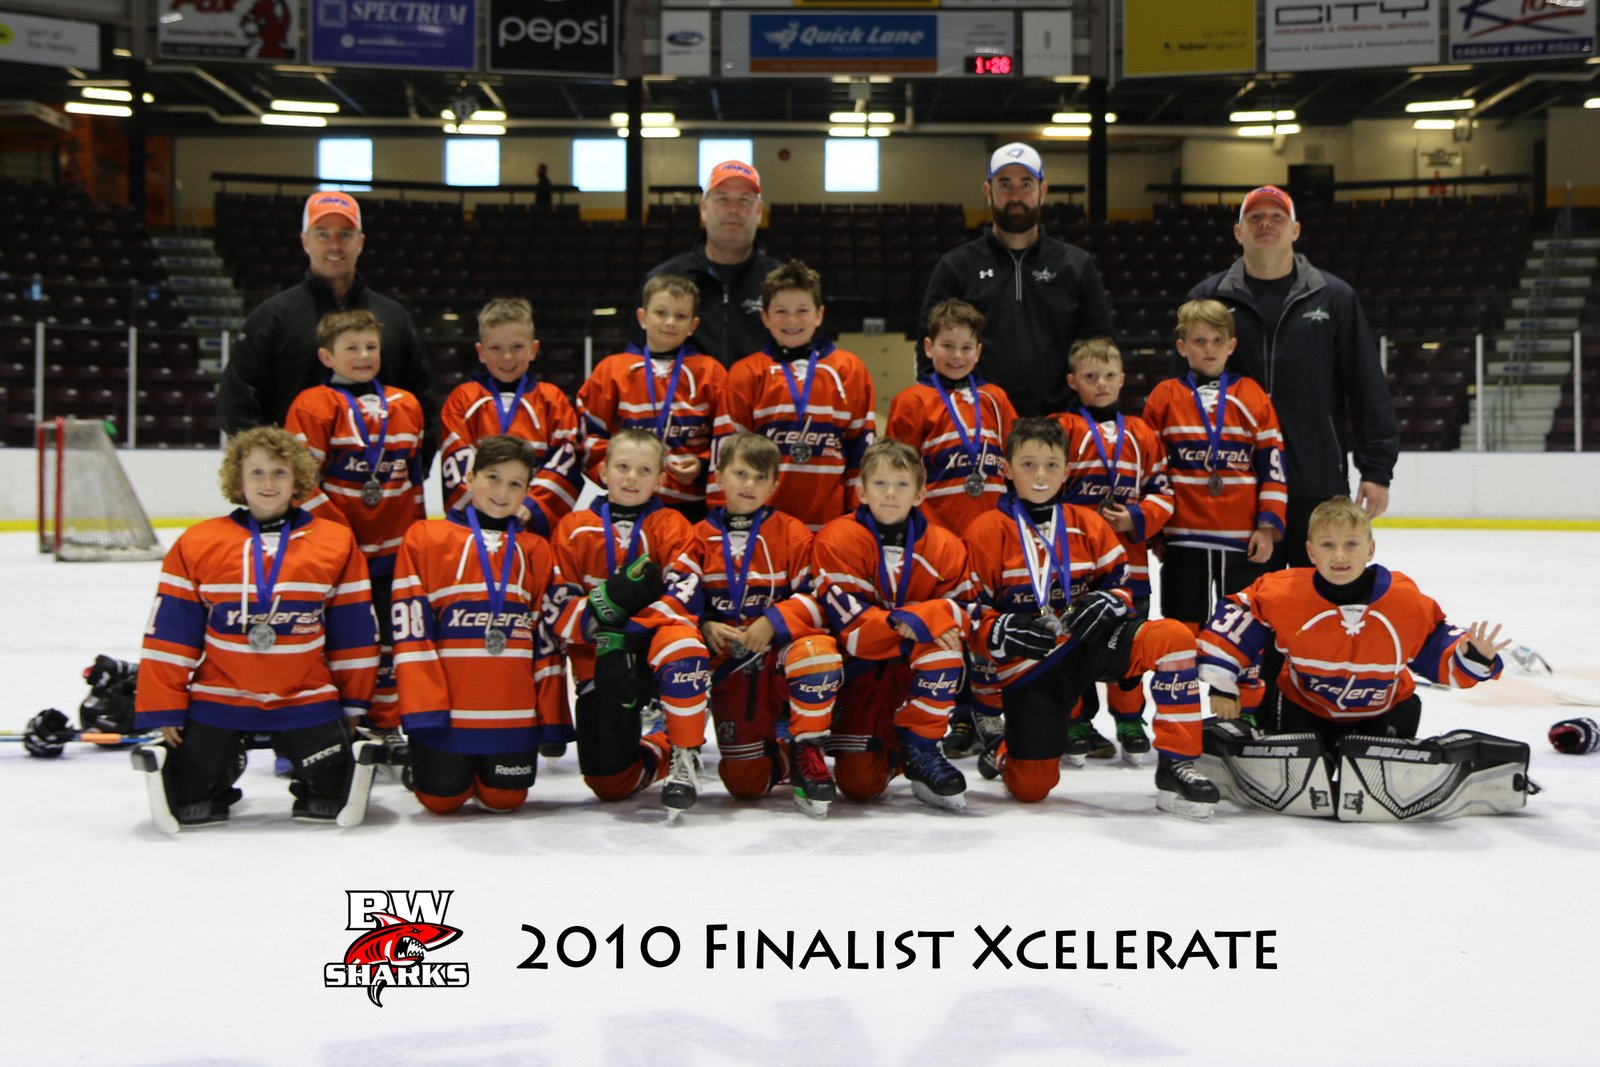 2010-Finalists-Xcelerate-SilverPeak-Studios-Canada-Sarnia-Bluewater-Sharks-Tournament-001